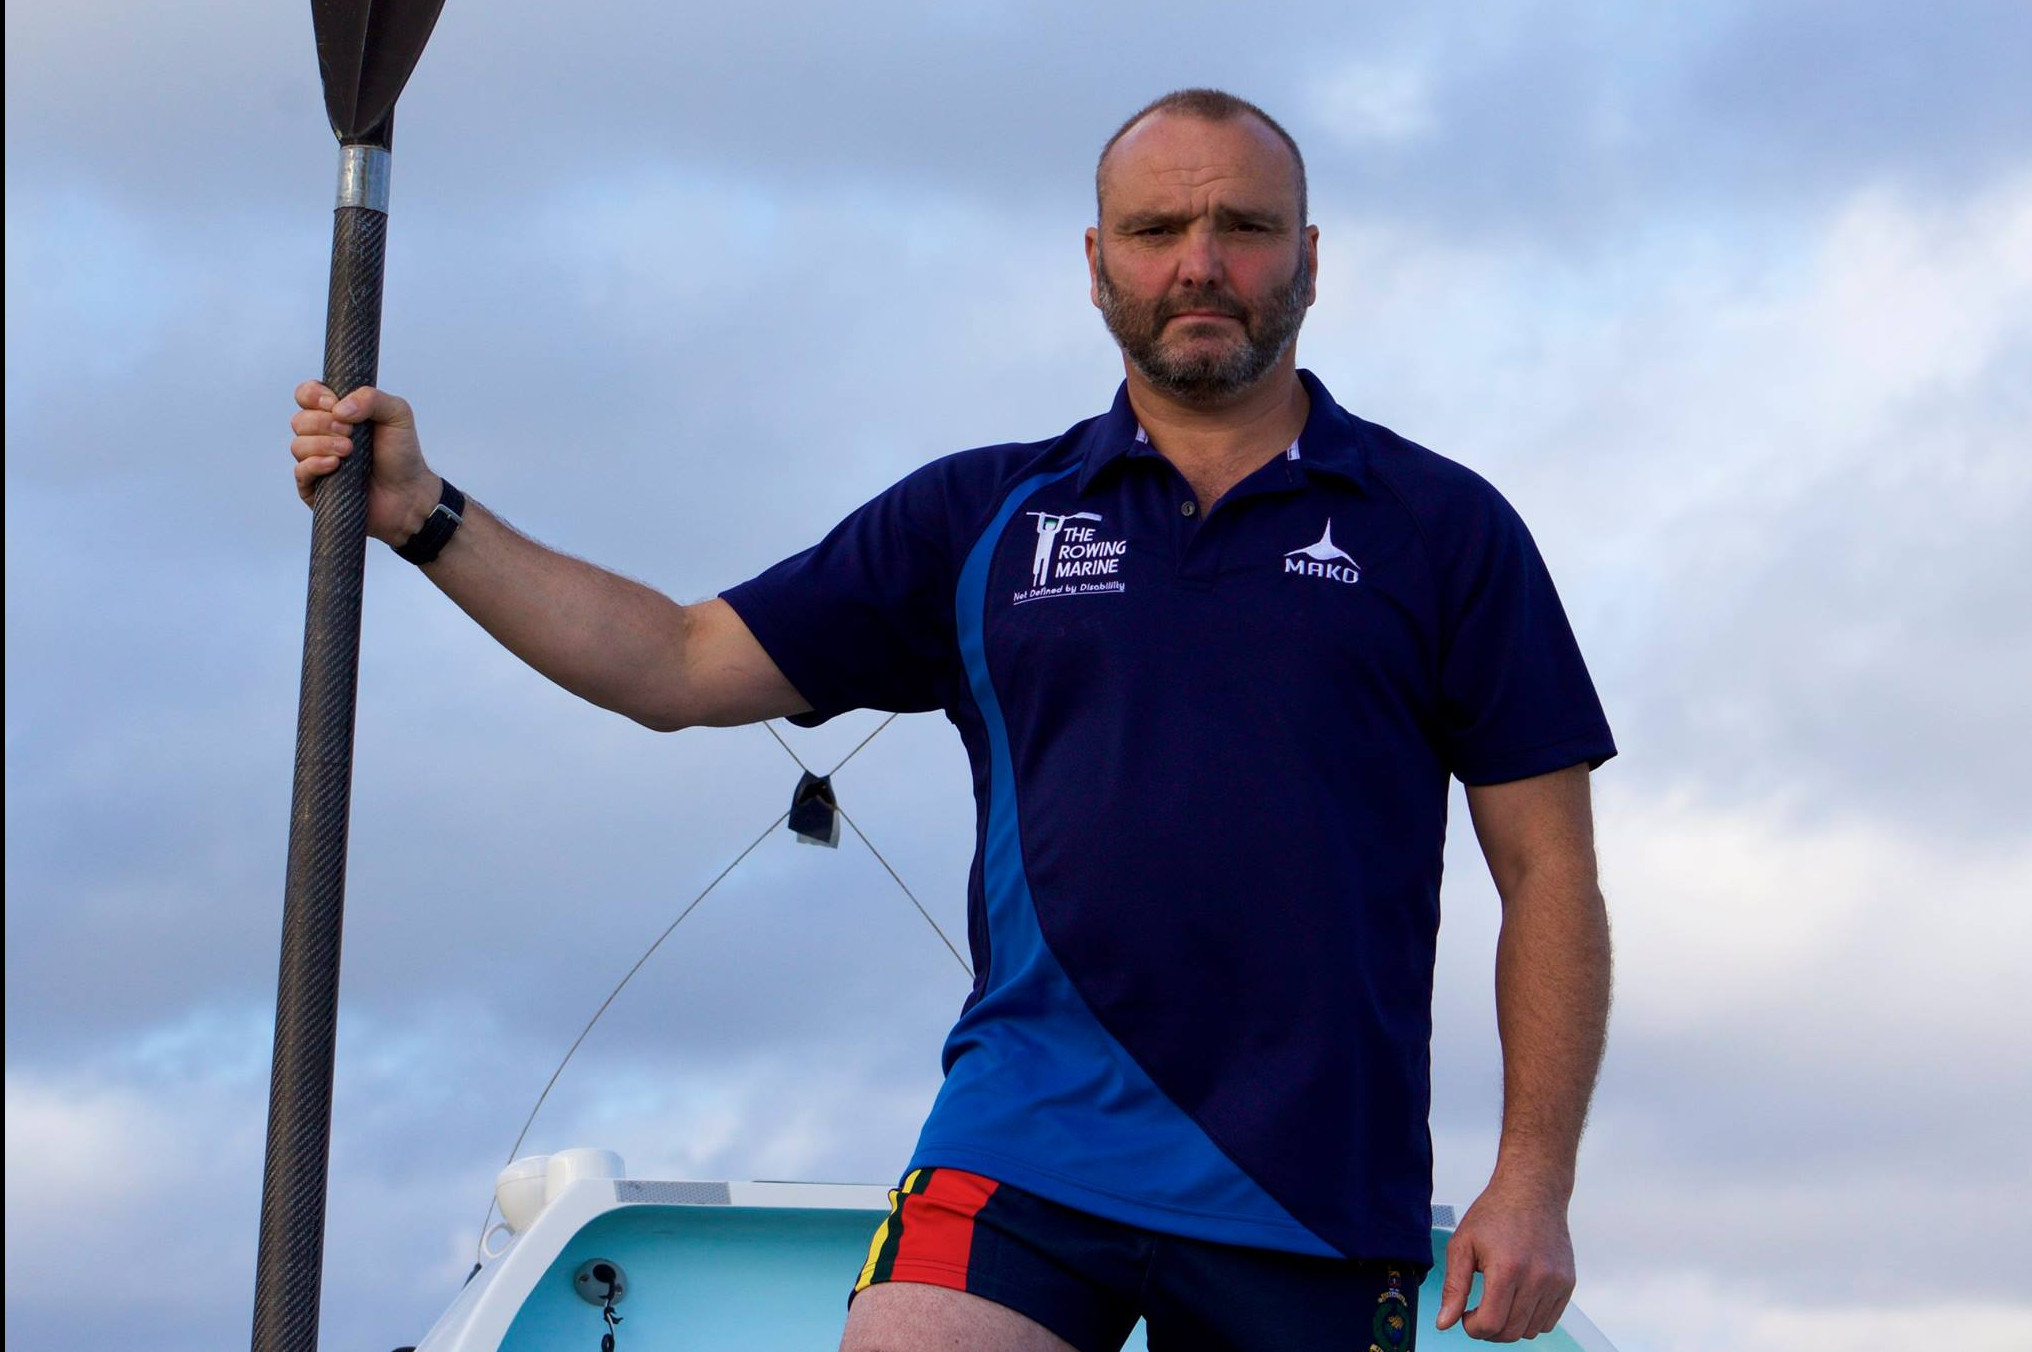 The Rowing Marine - We are thrilled to be supporting Lee Spencer as our 2019 charity of the year.